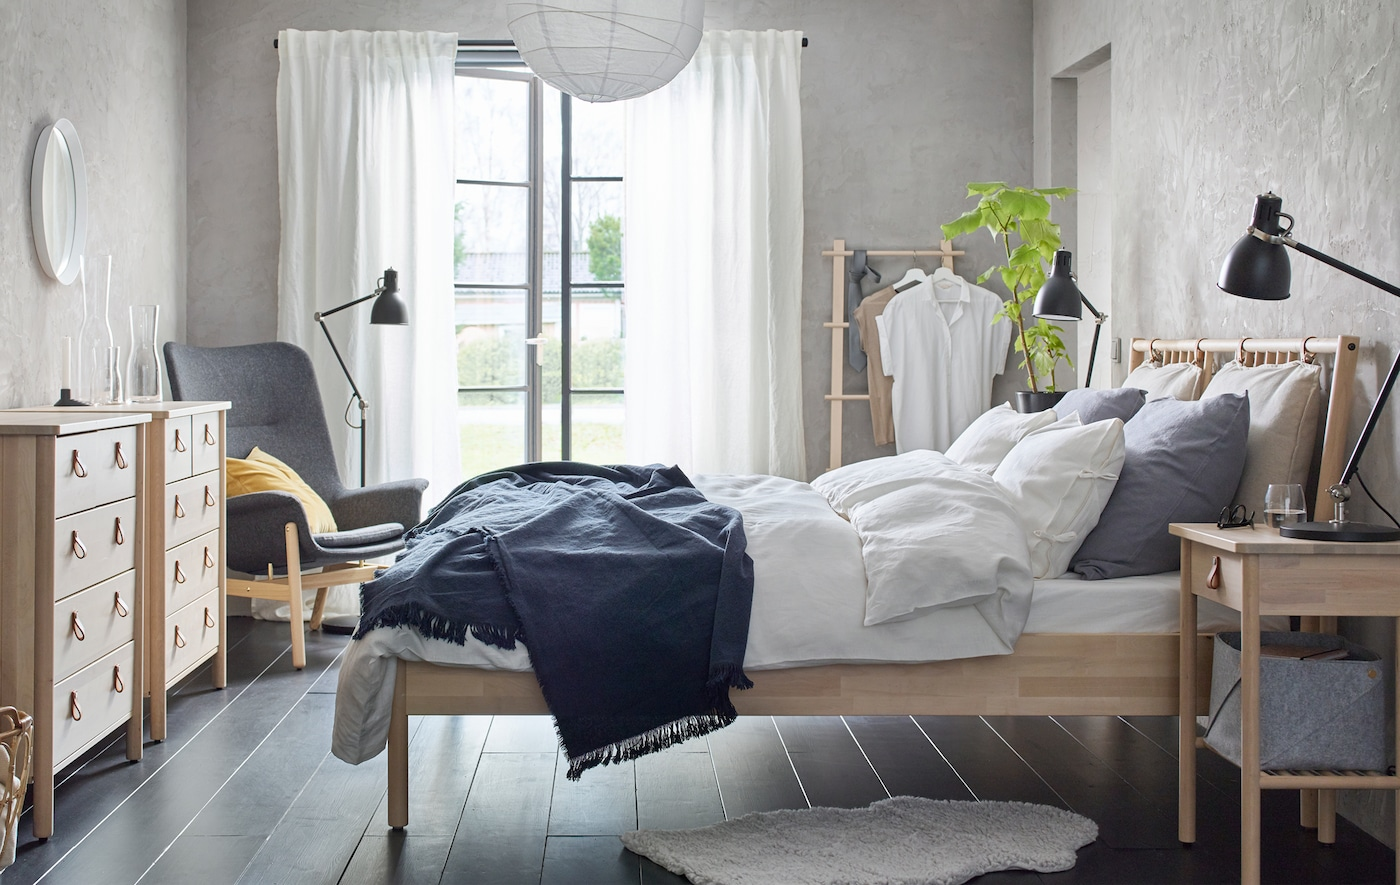 Bedroom furniture made to last practically forever - IKEA Ireland